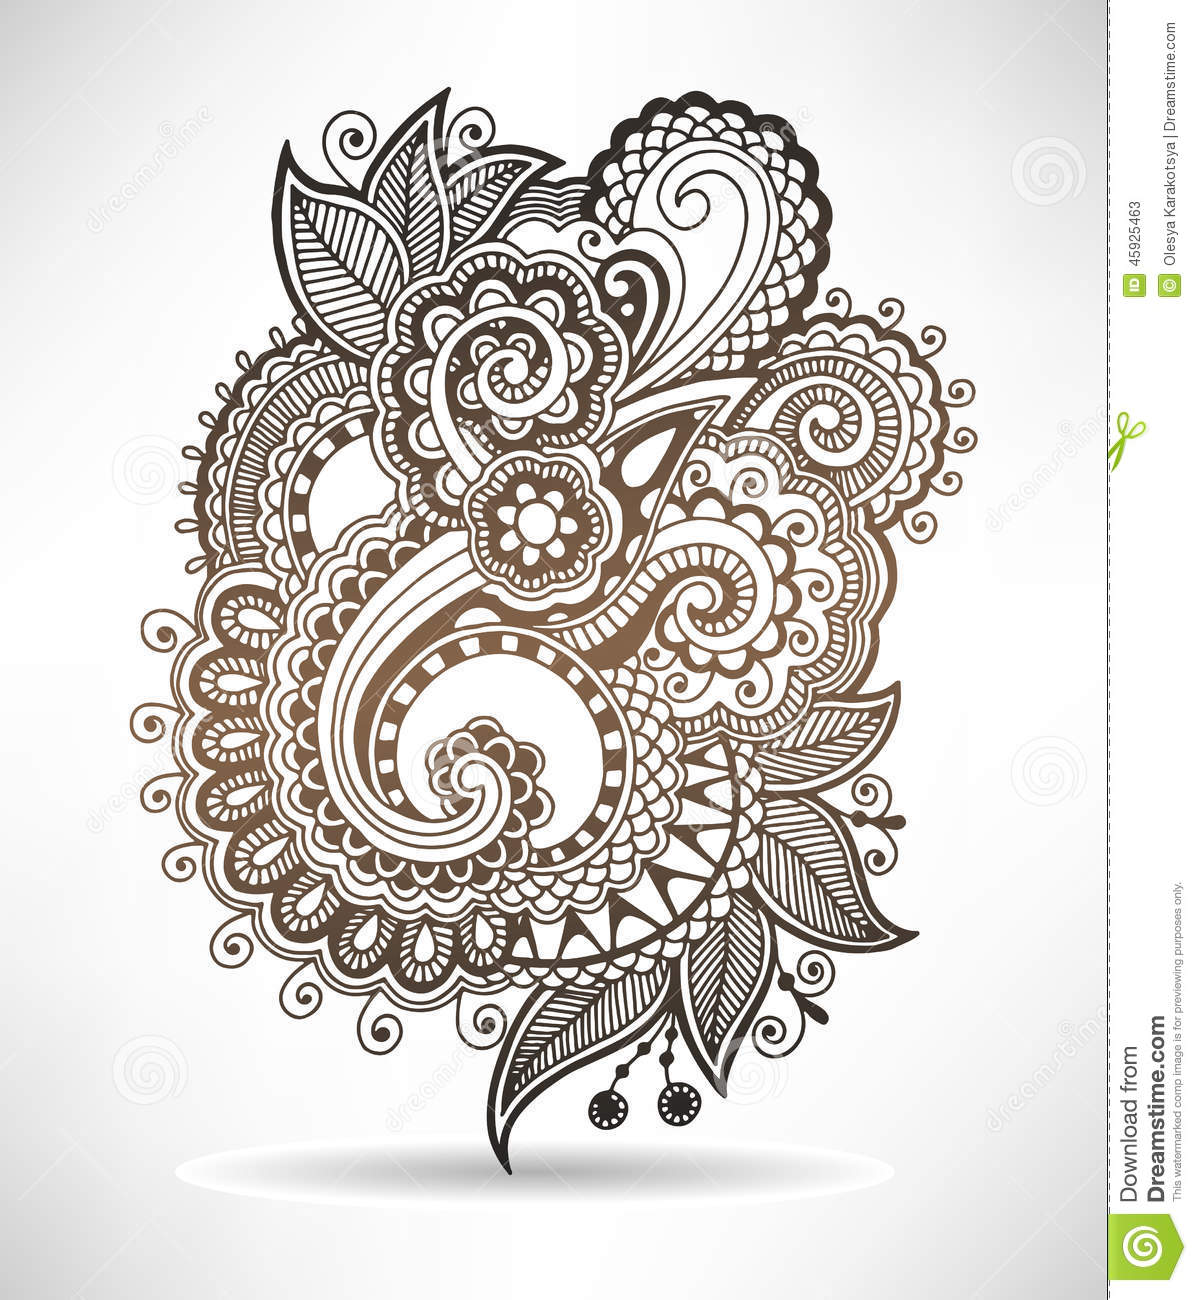 Line Art Box Designs : Line art ornate flower design ukrainian ethnic stock